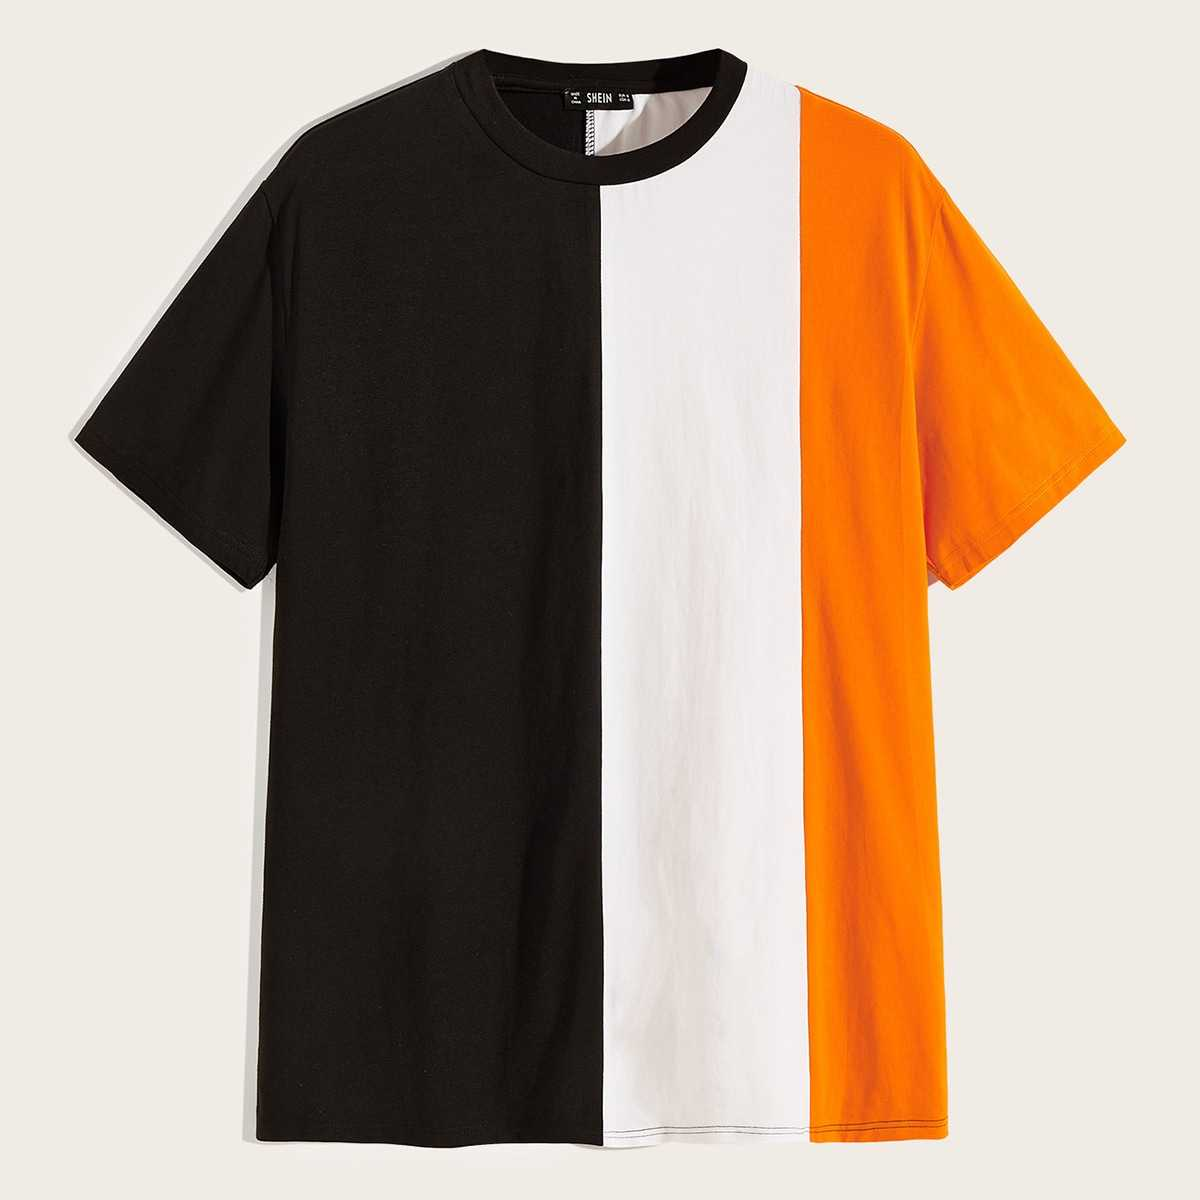 Guys Neon Color-block Tee in Multicolor Bright by ROMWE on GOOFASH